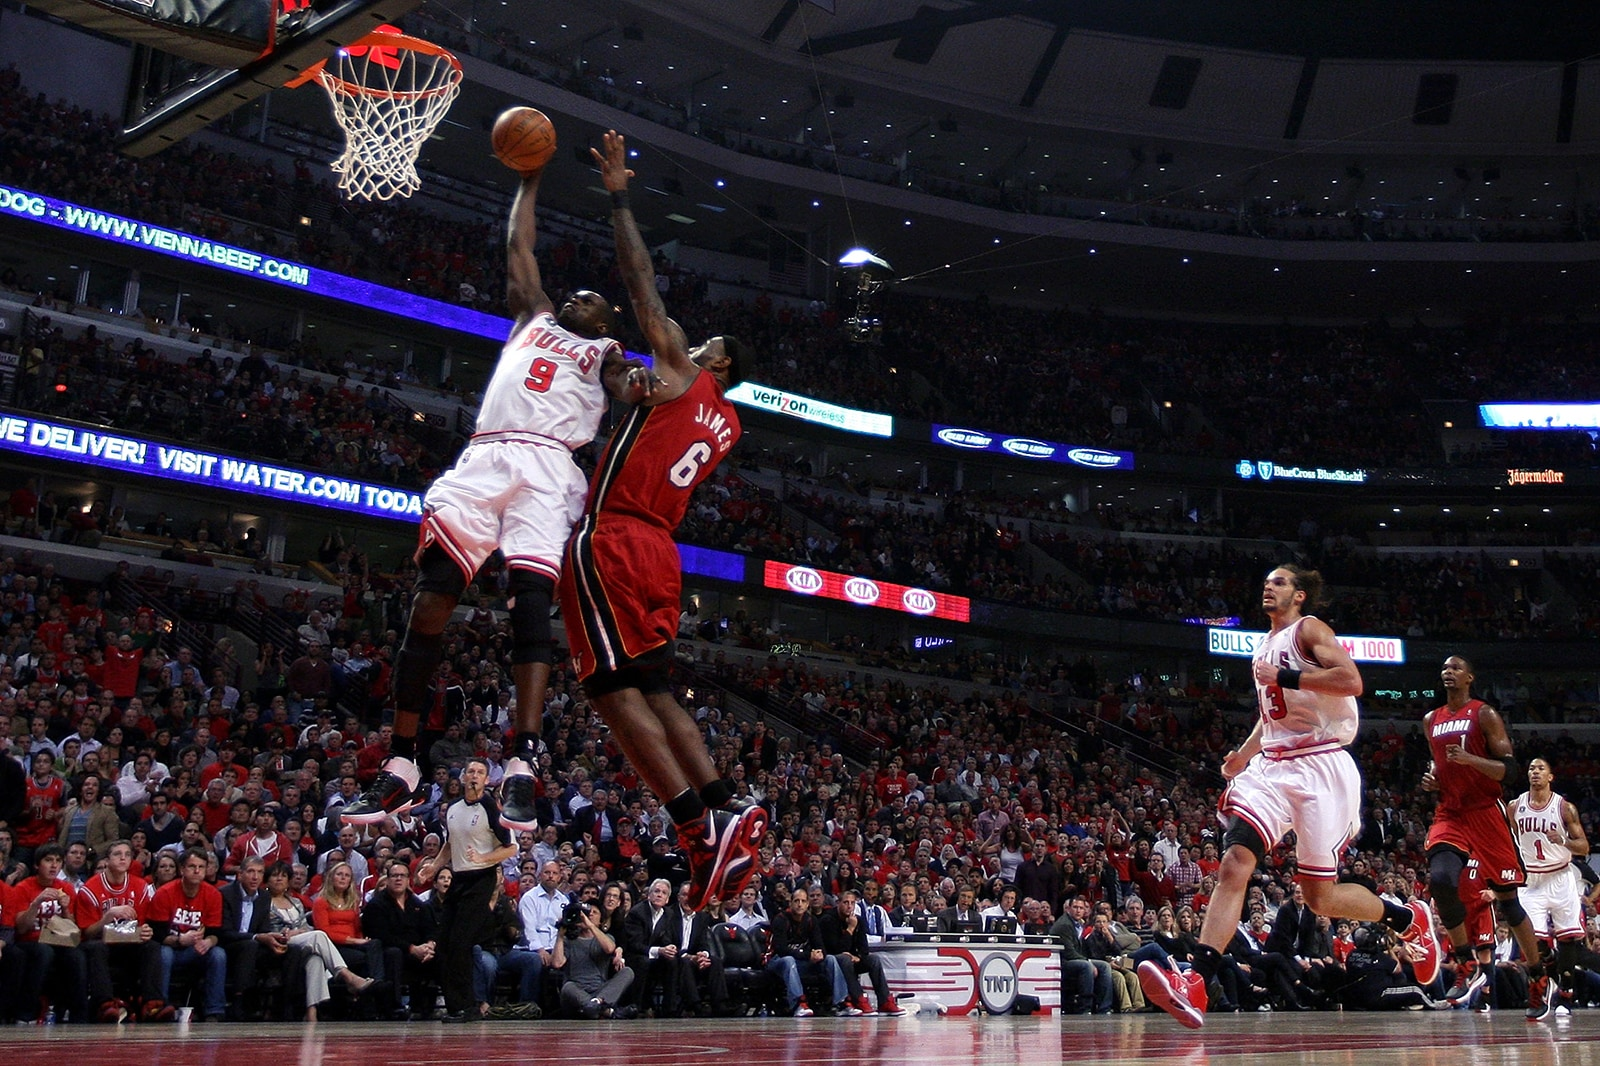 Luol Deng dunks with LeBron defending him